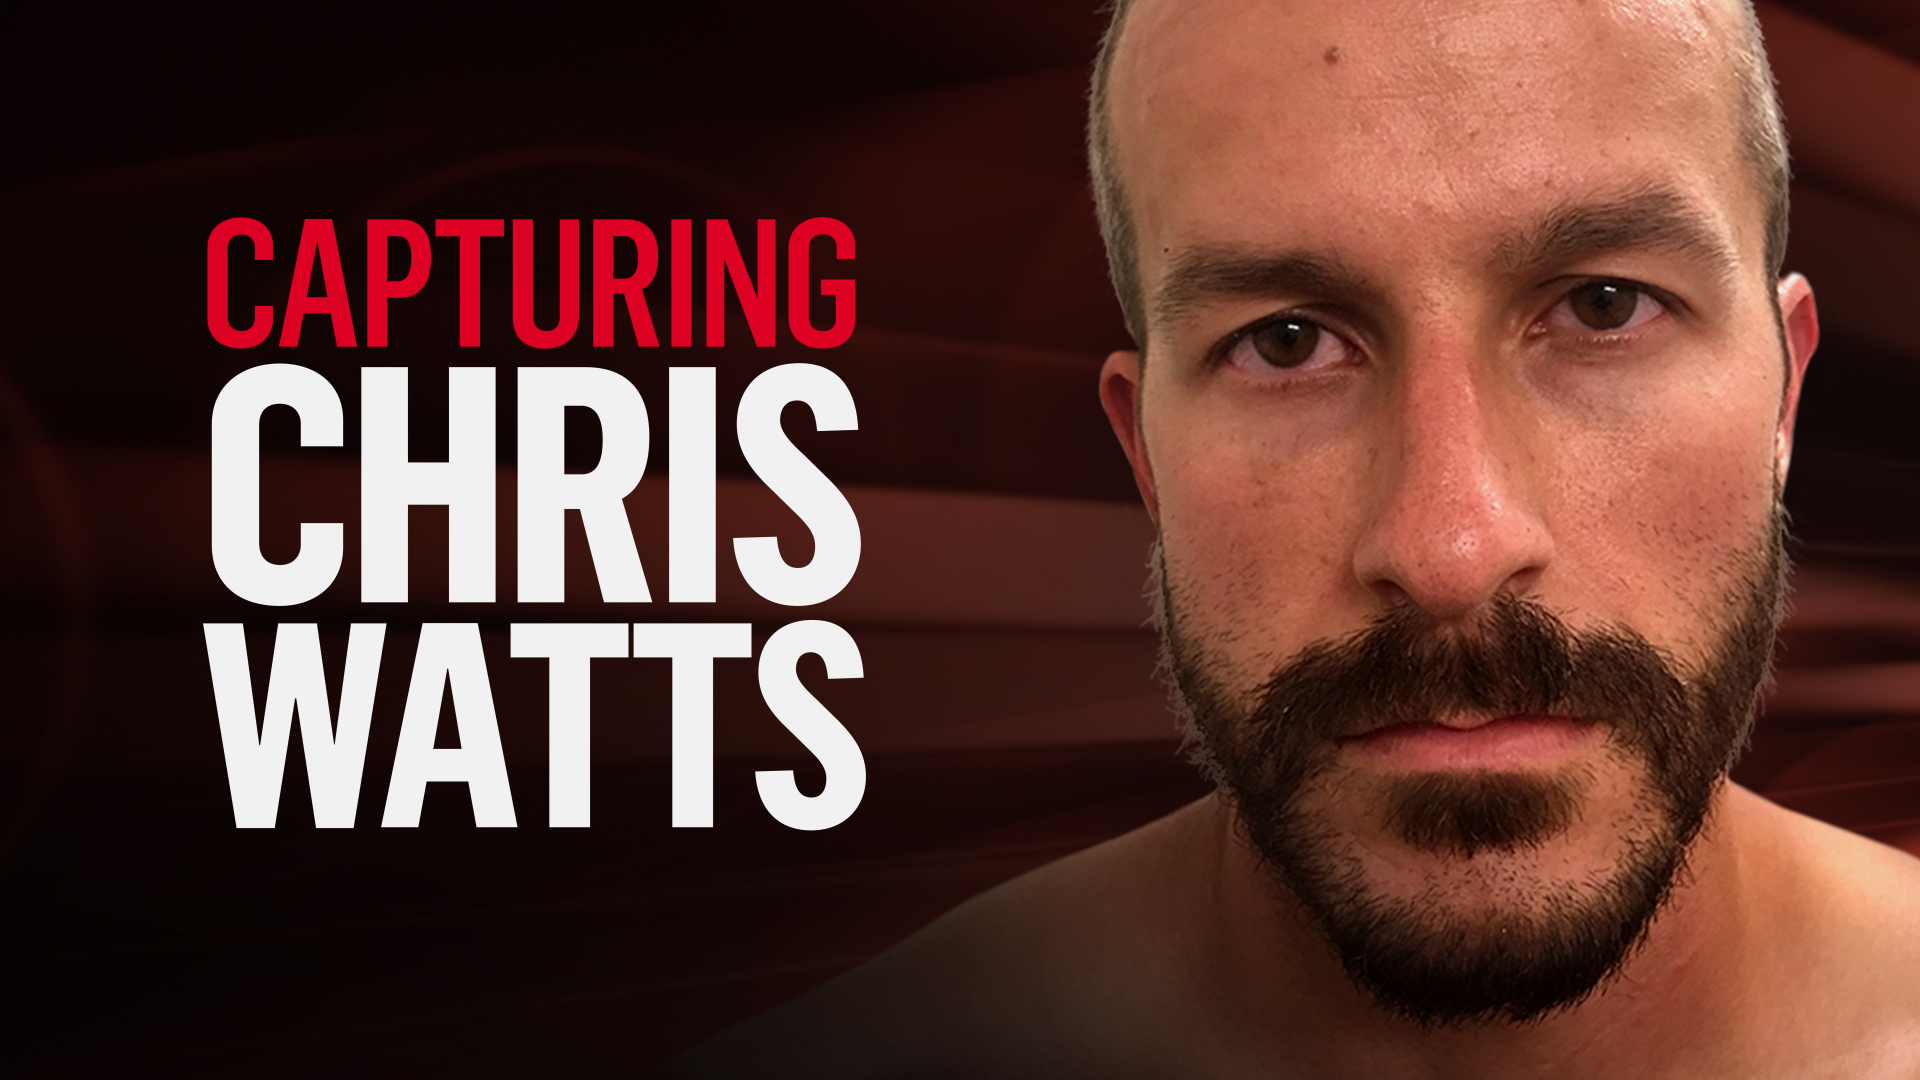 Watch Capturing Chris Watts and More on Roku, Fire TV, and Prime Video this December